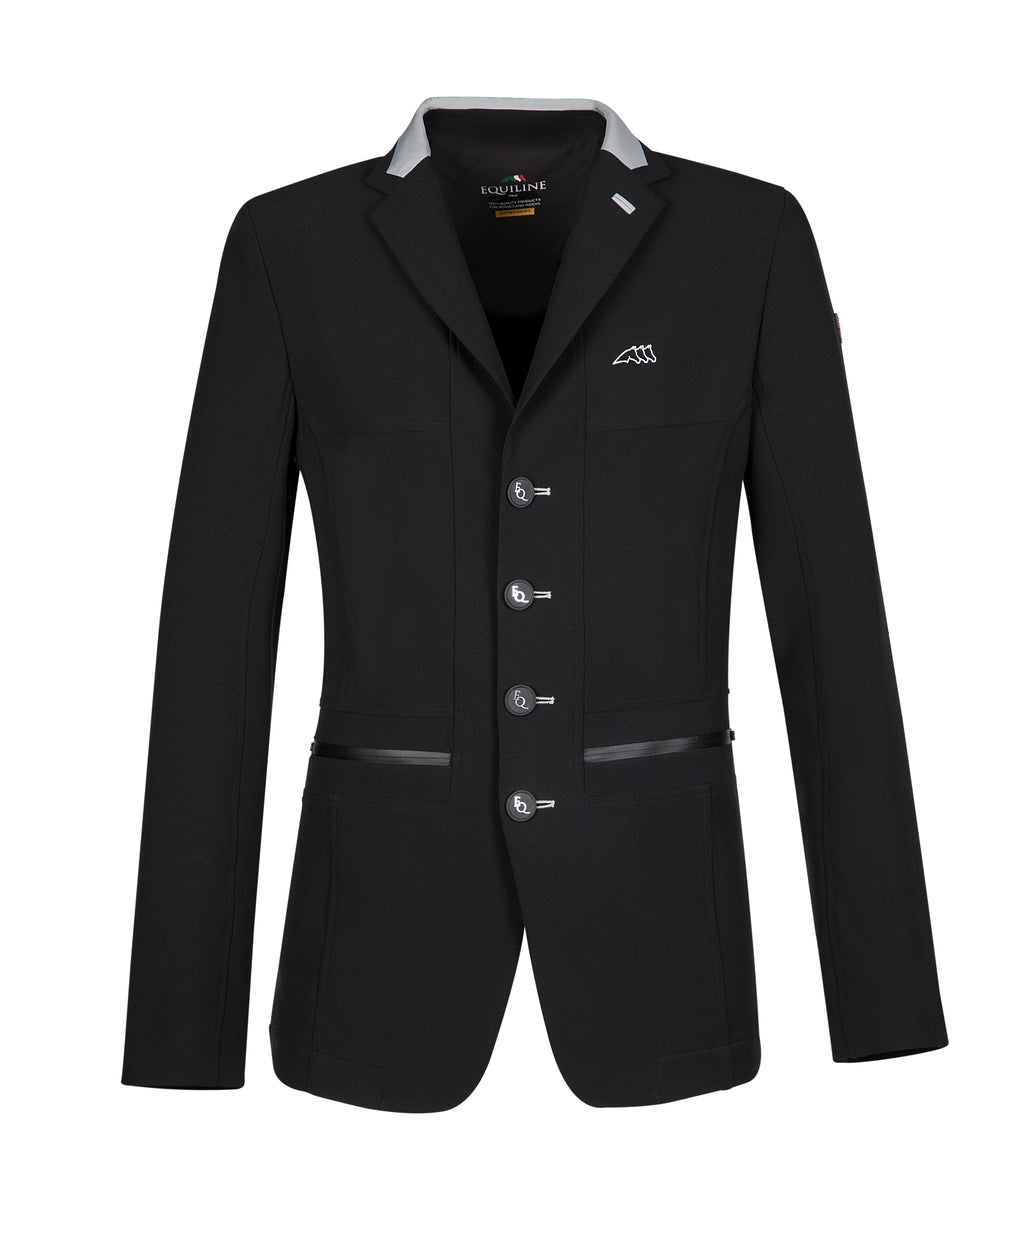 Burnt men's show coat black